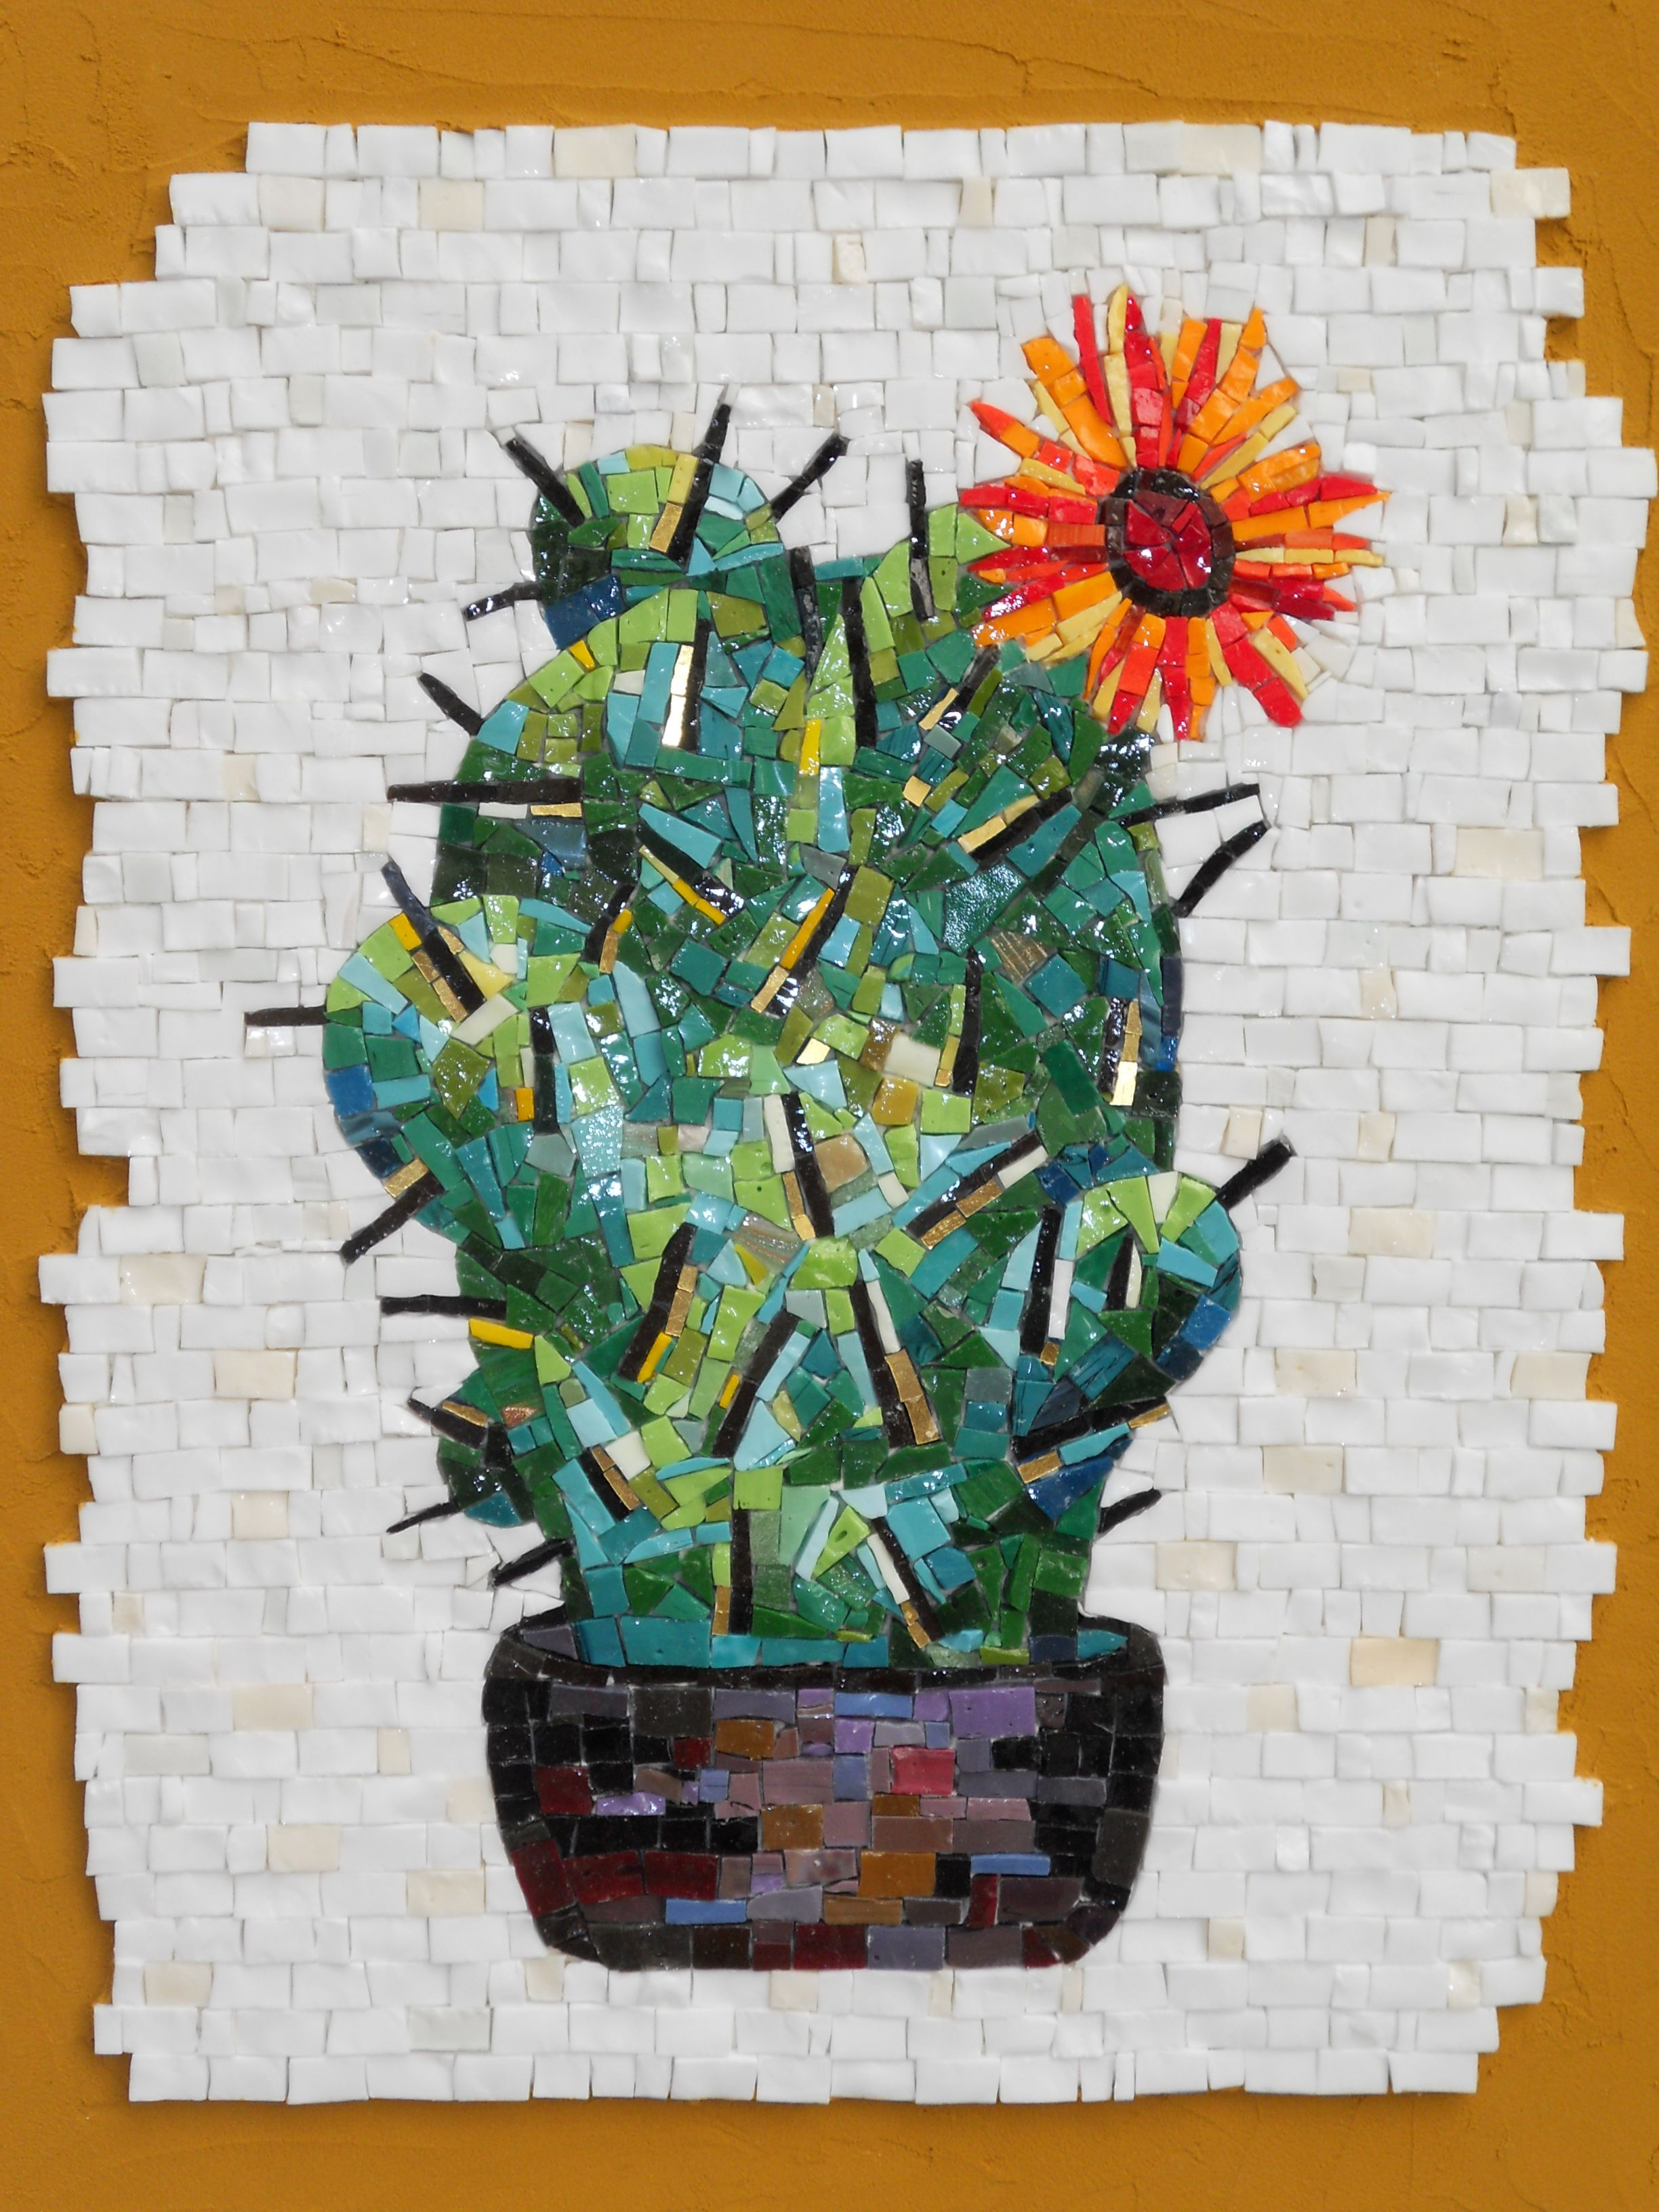 Check out more of our mosaic work here: inartehashimoto